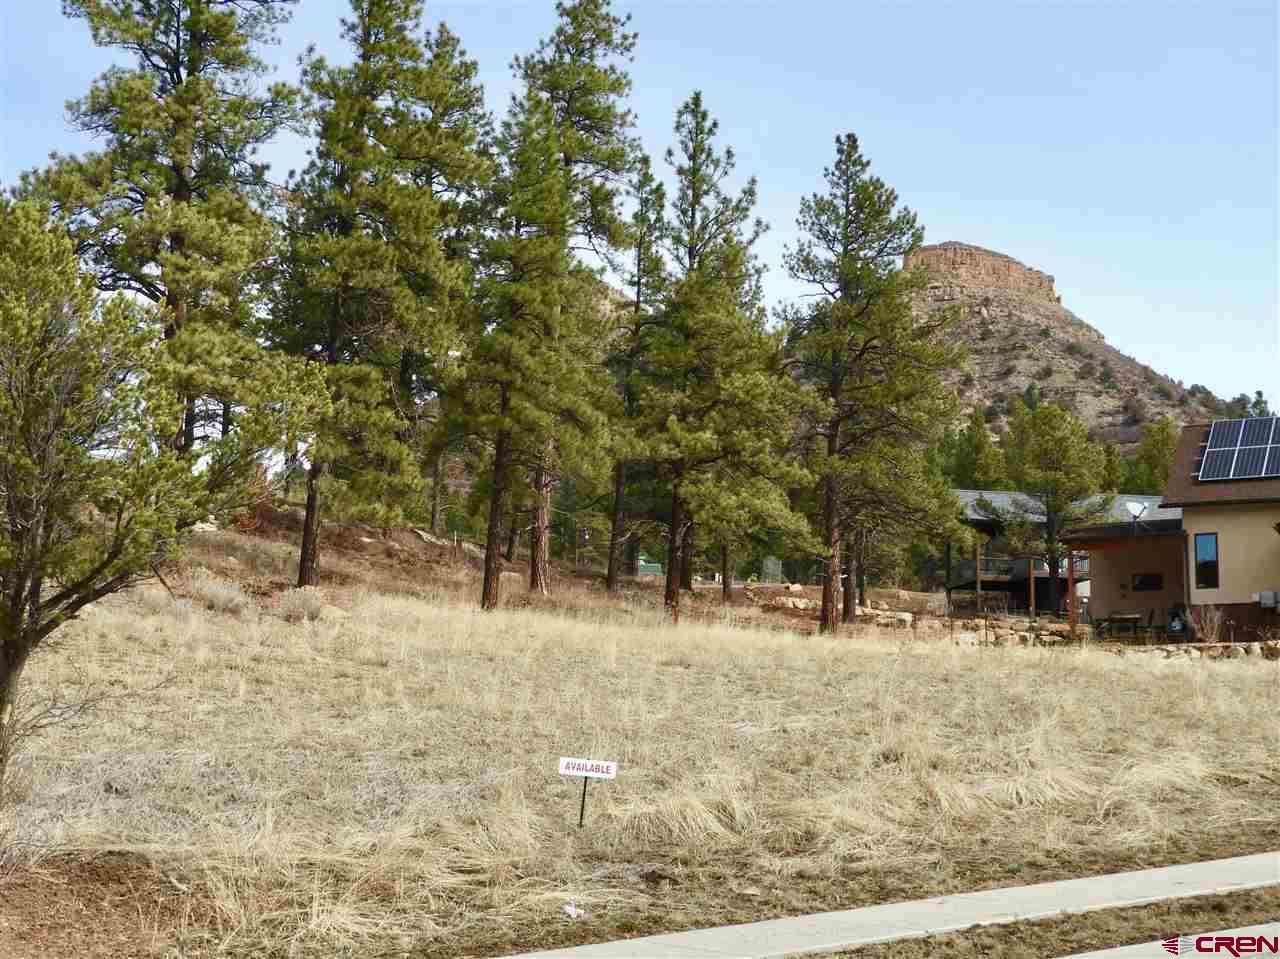 Photo of (Lot 12) 85 Larkspur Street, Durango, CO 81301 (MLS # 767590)